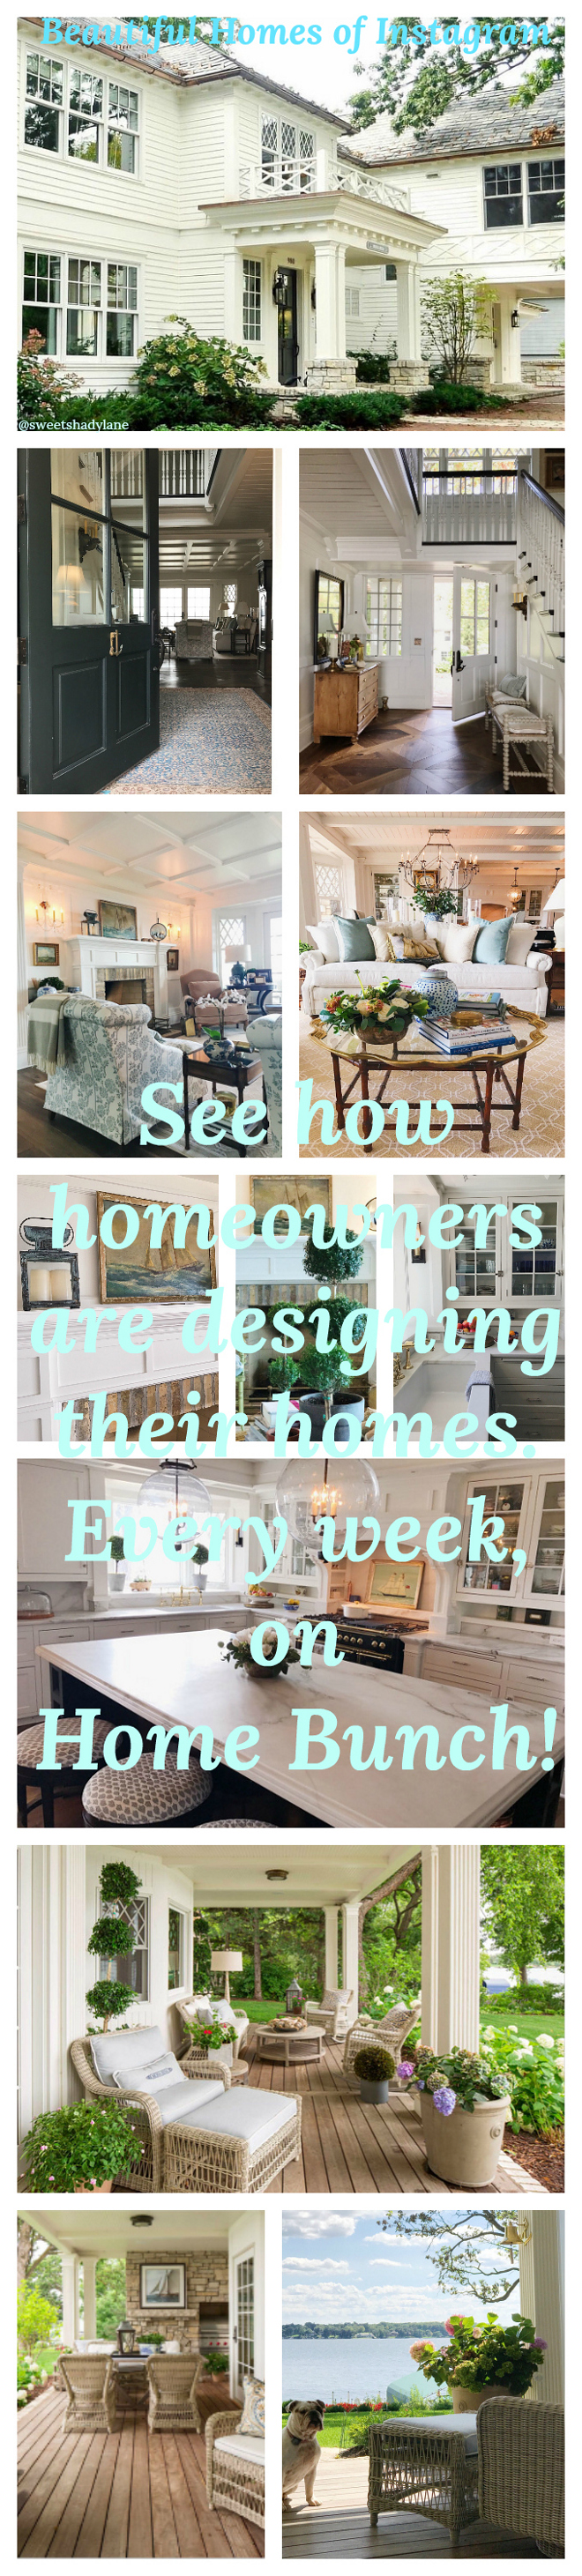 Beautiful Homes of Instagram. See how real homeonwers are designing their own homes. Every week on Home Bunch. @SweetShadyLane